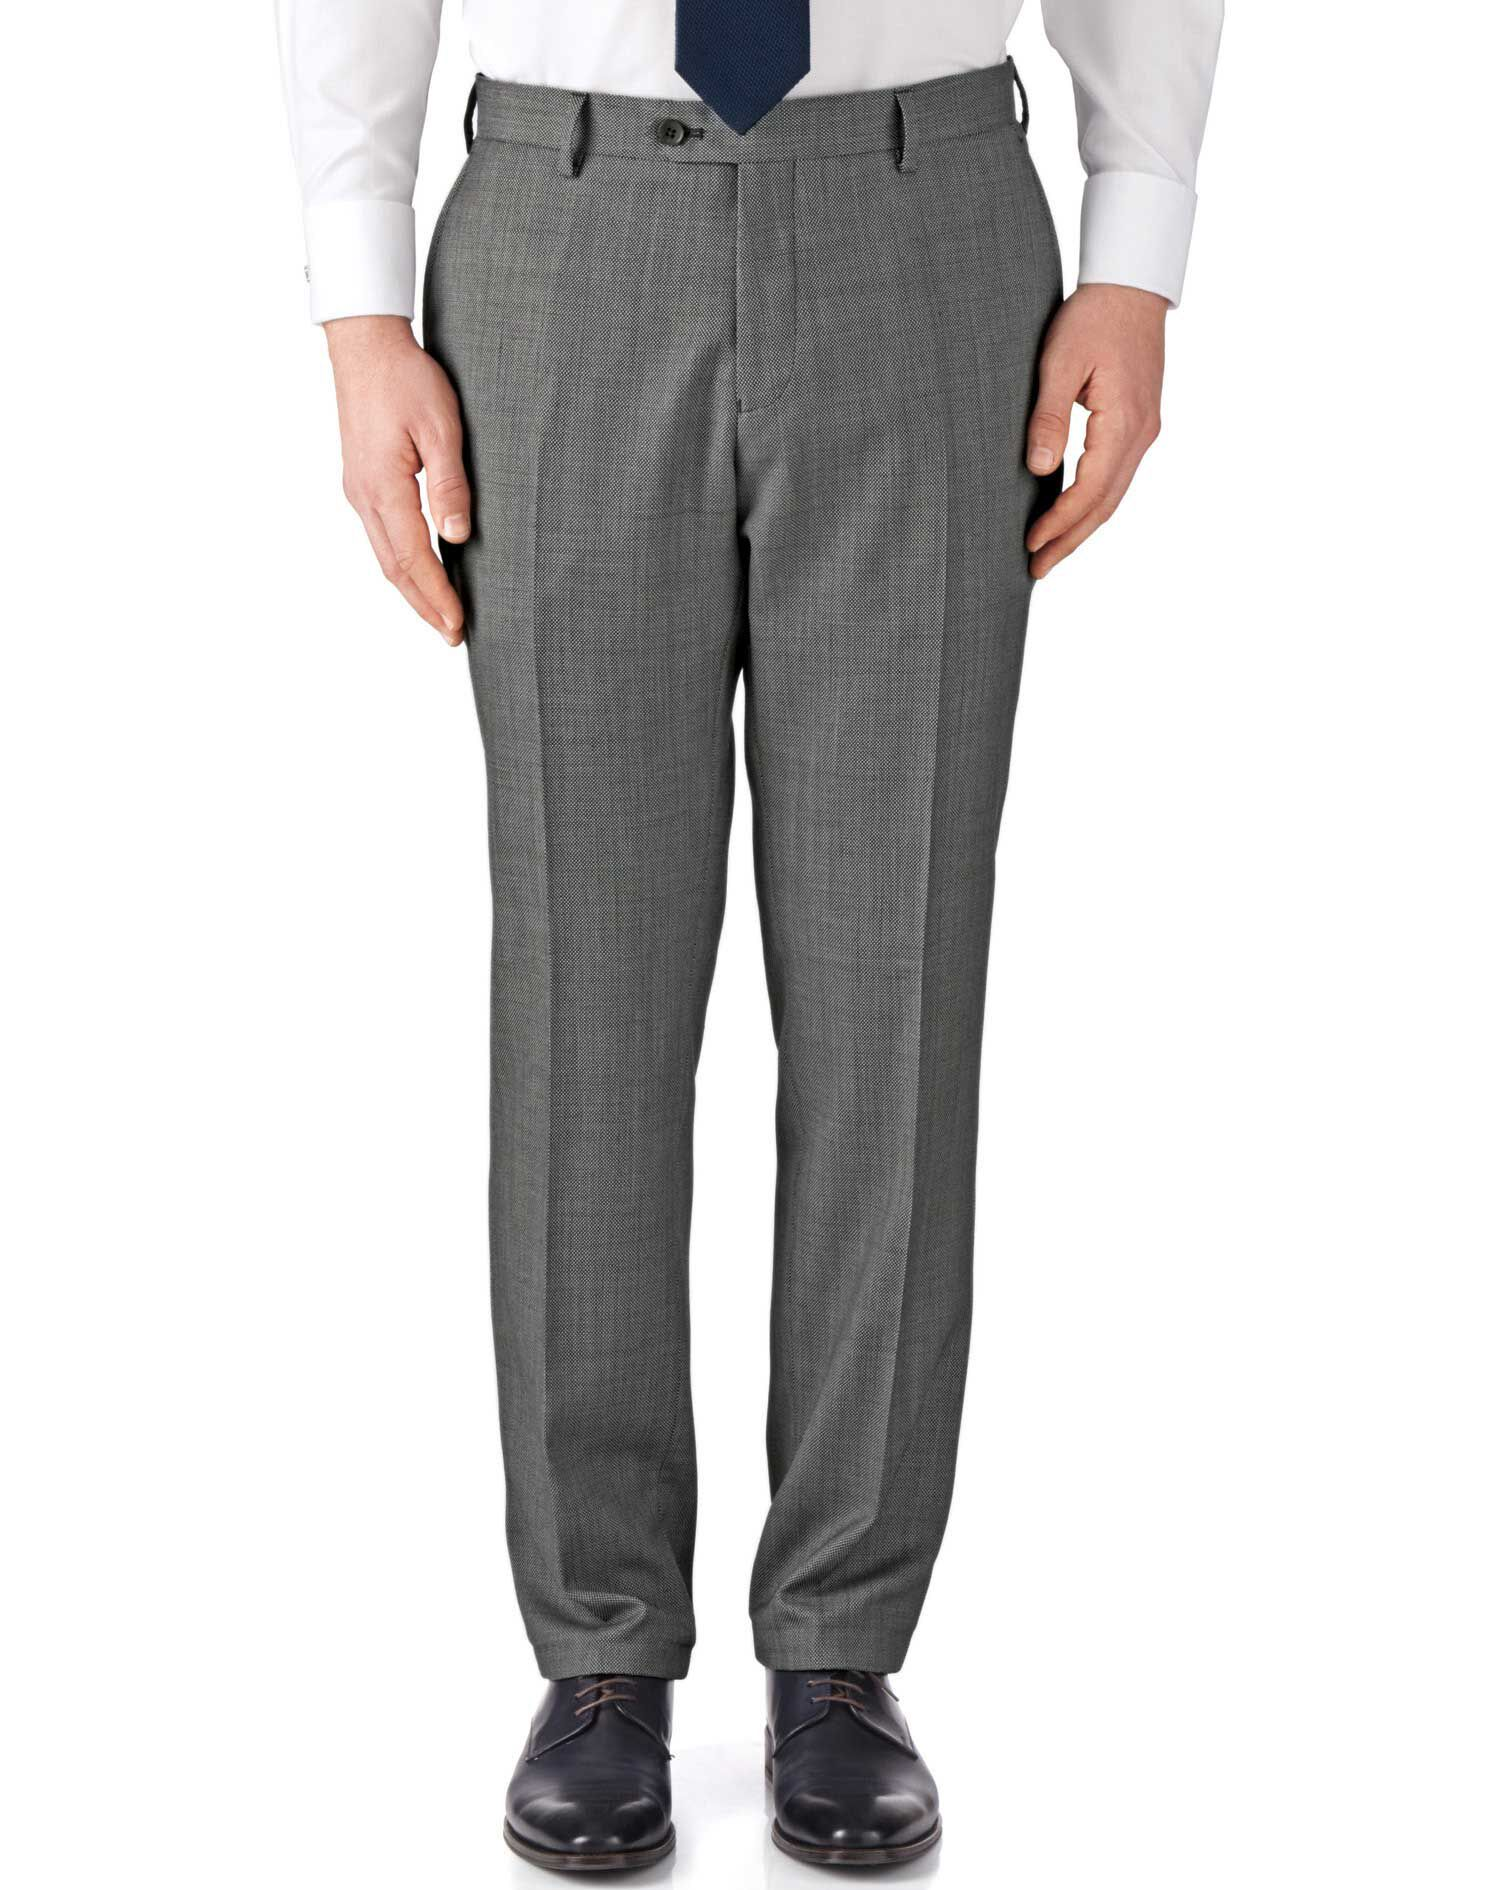 Grey Classic Fit Birdseye Travel Suit Trousers Size W32 L30 by Charles Tyrwhitt